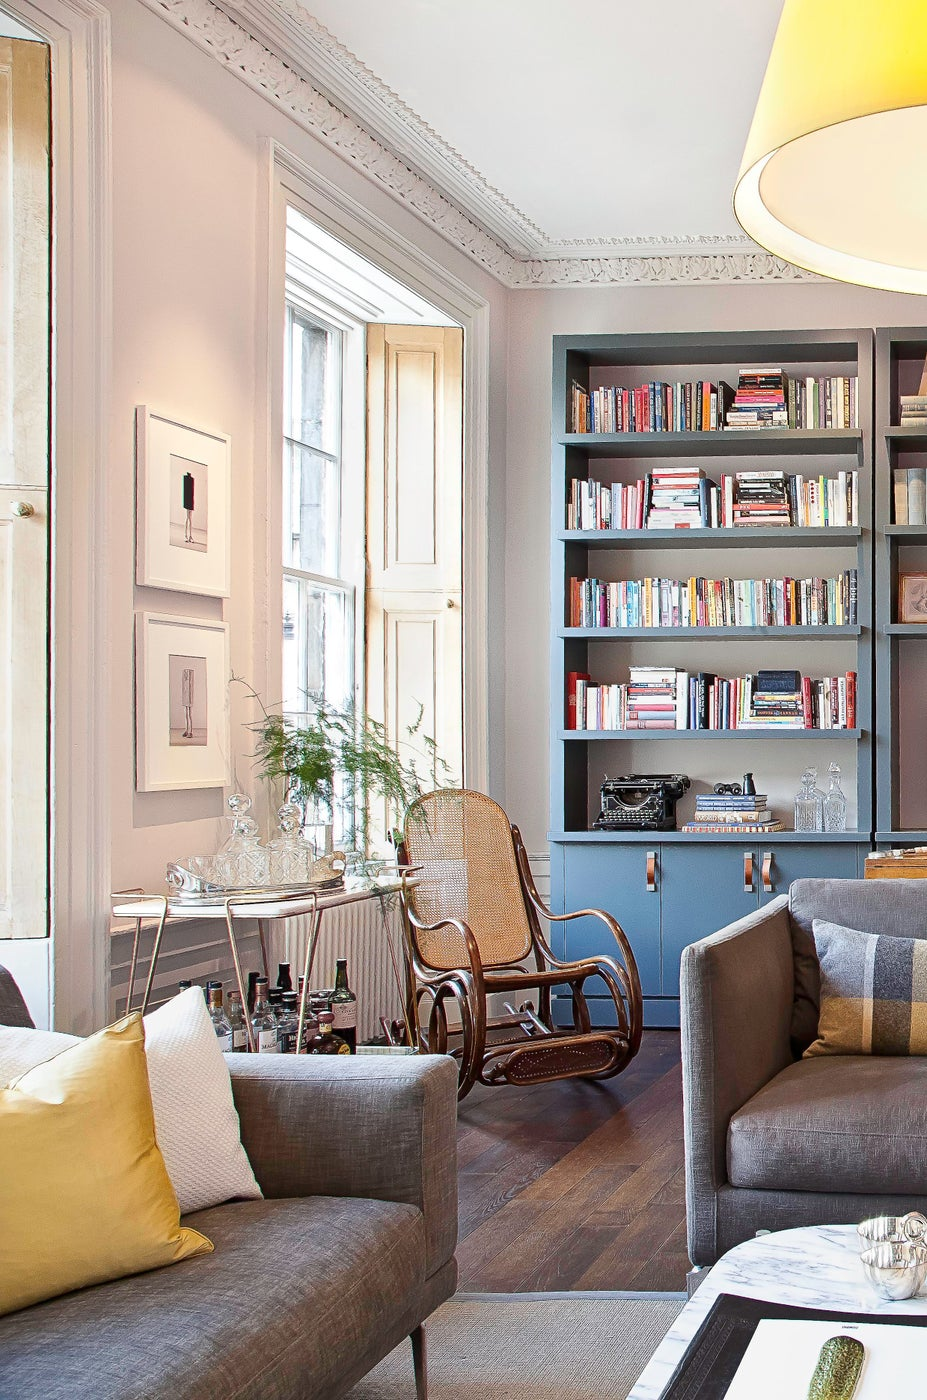 Grand Room with beautiful custom bookshelves, high ceilings and tons of light!